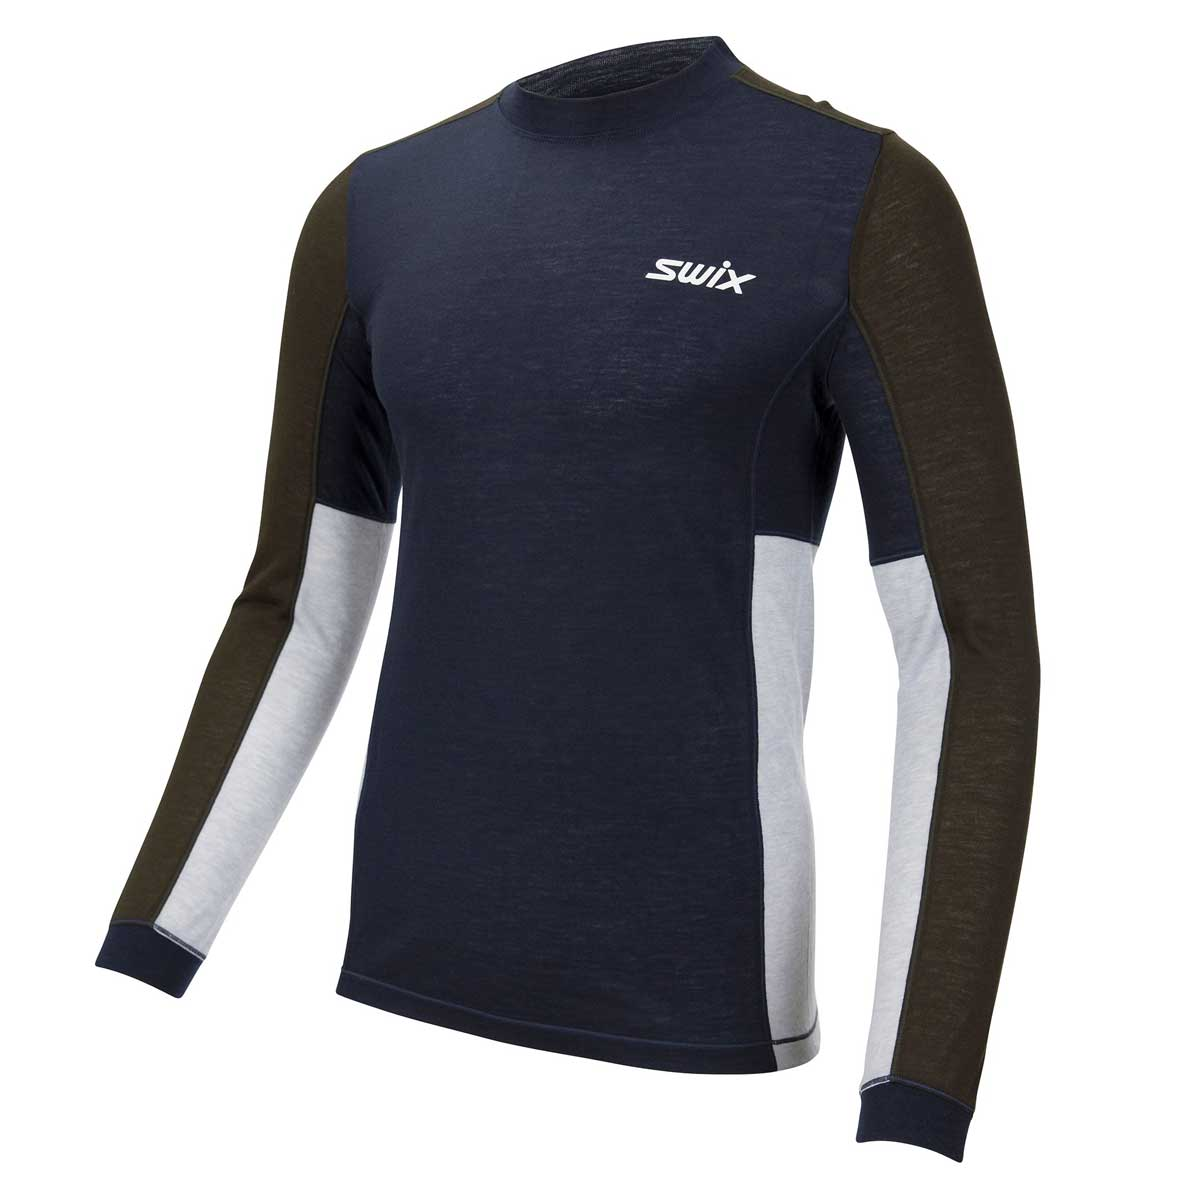 Swix Aspire Wool Blend Long Sleeve Top - Men's